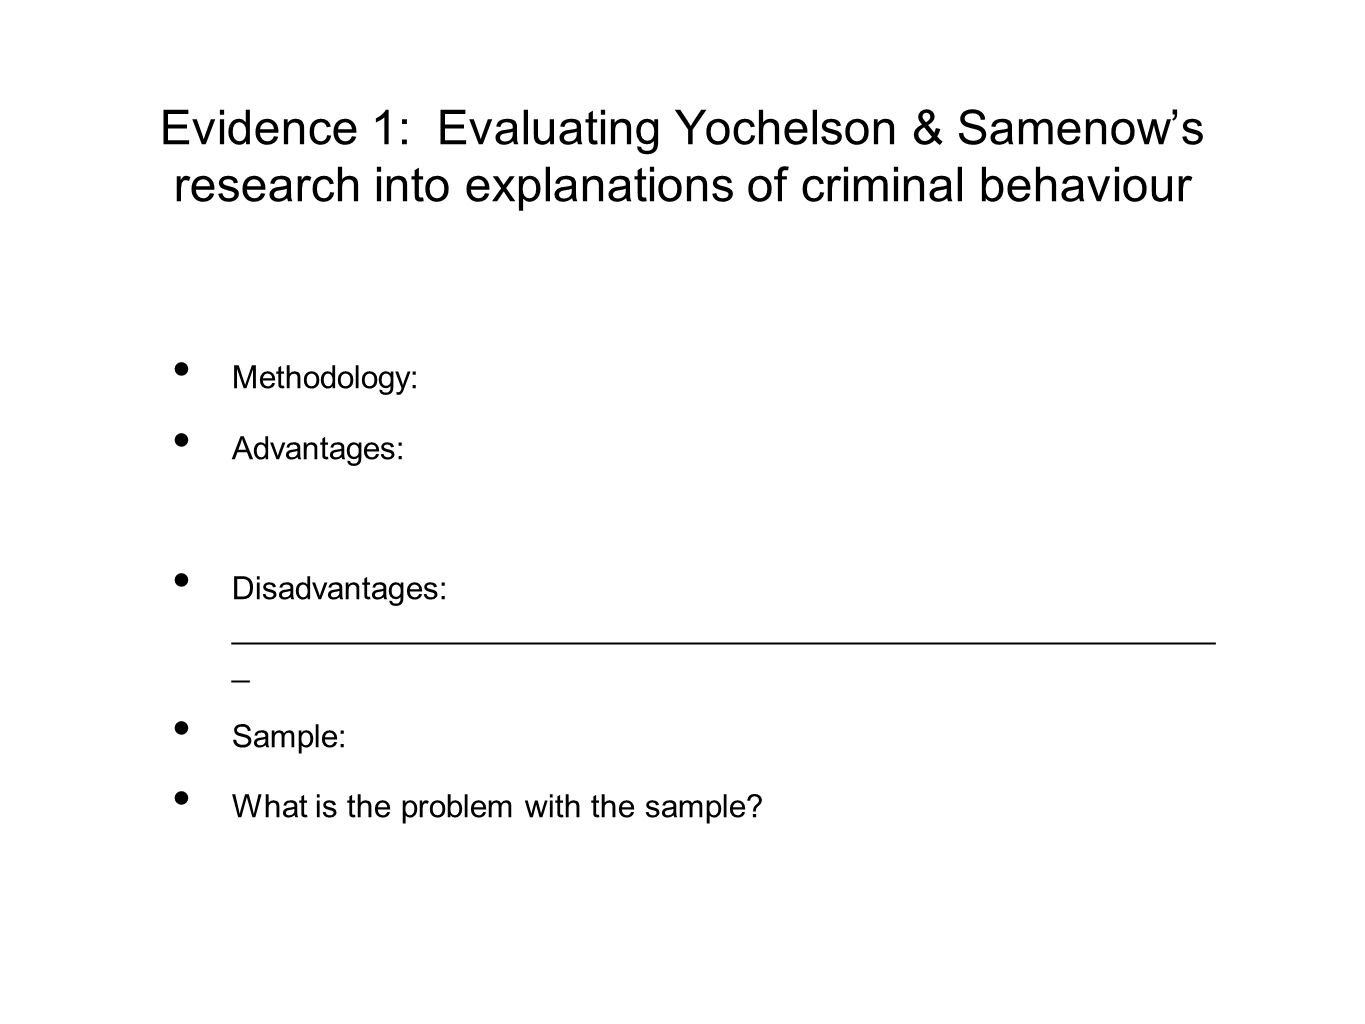 Evidence 1: Evaluating Yochelson & Samenow's research into explanations of criminal behaviour ISSUES: The other weakness of this research is the lack of a control group.